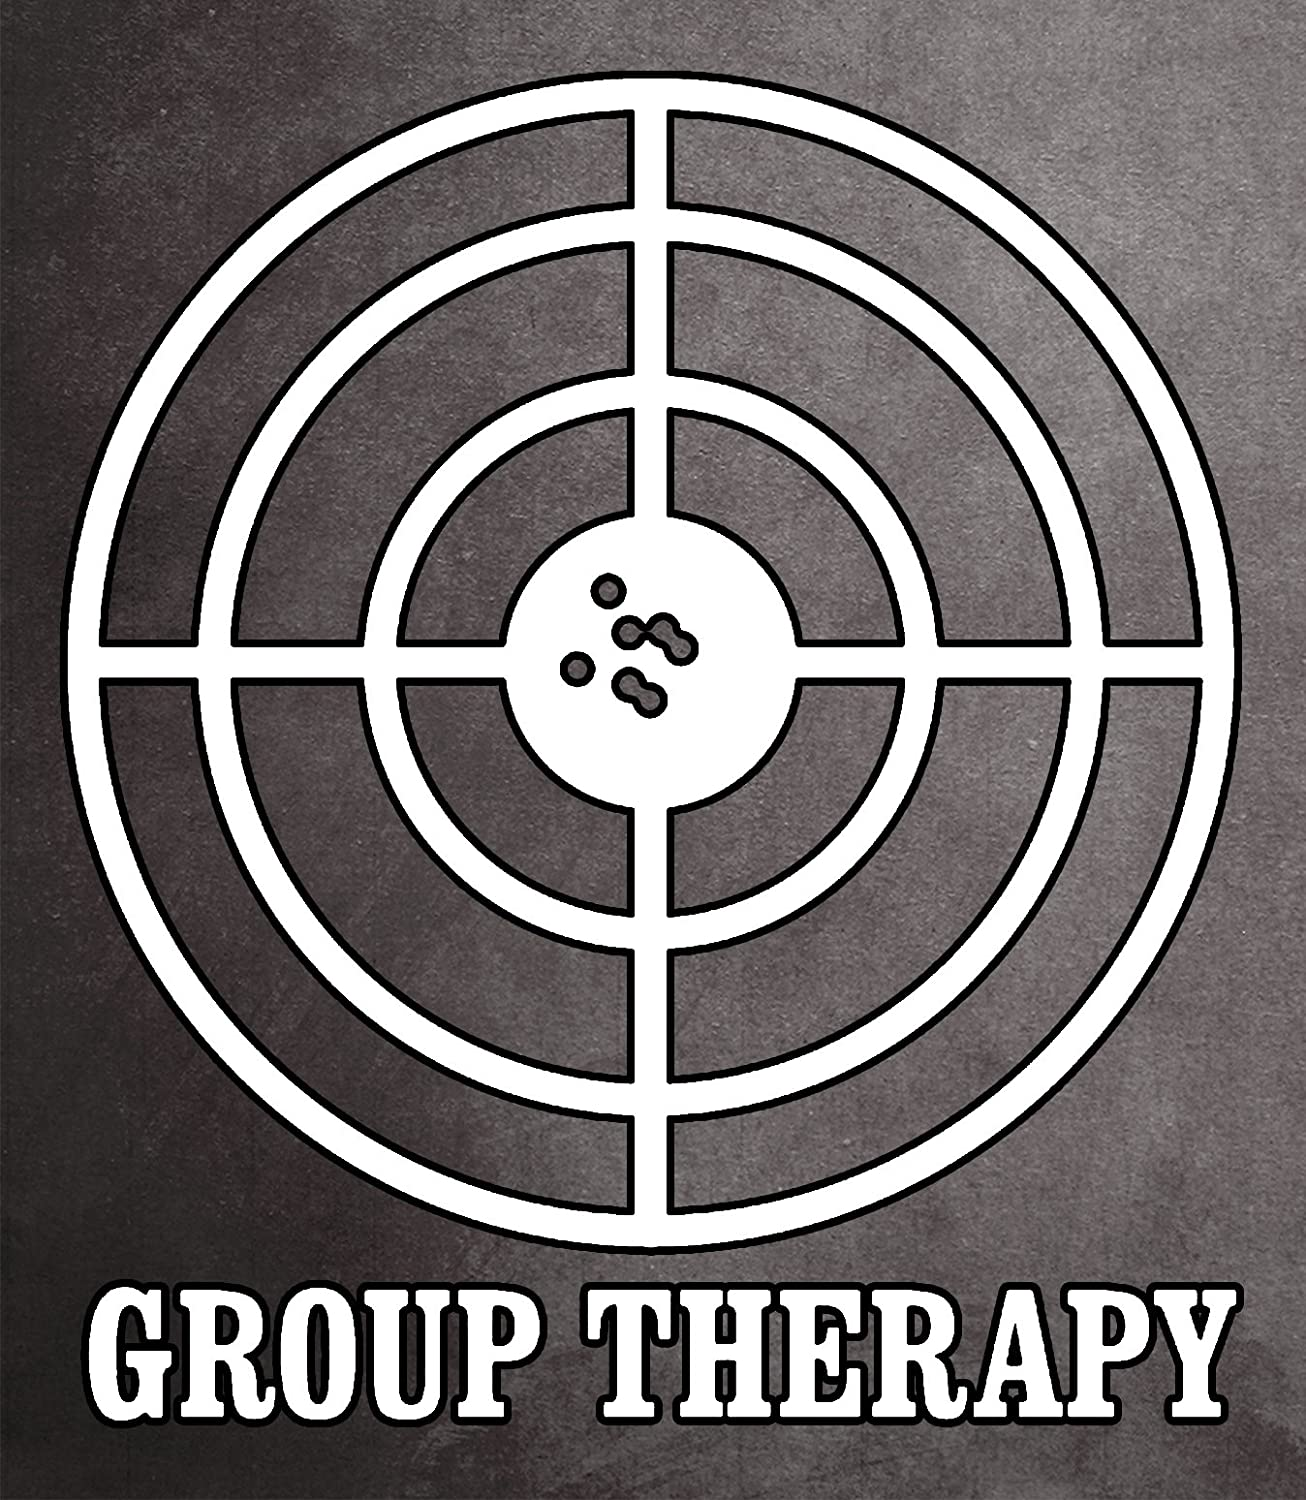 Group Therapy Full Color Auto Truck Window Decal